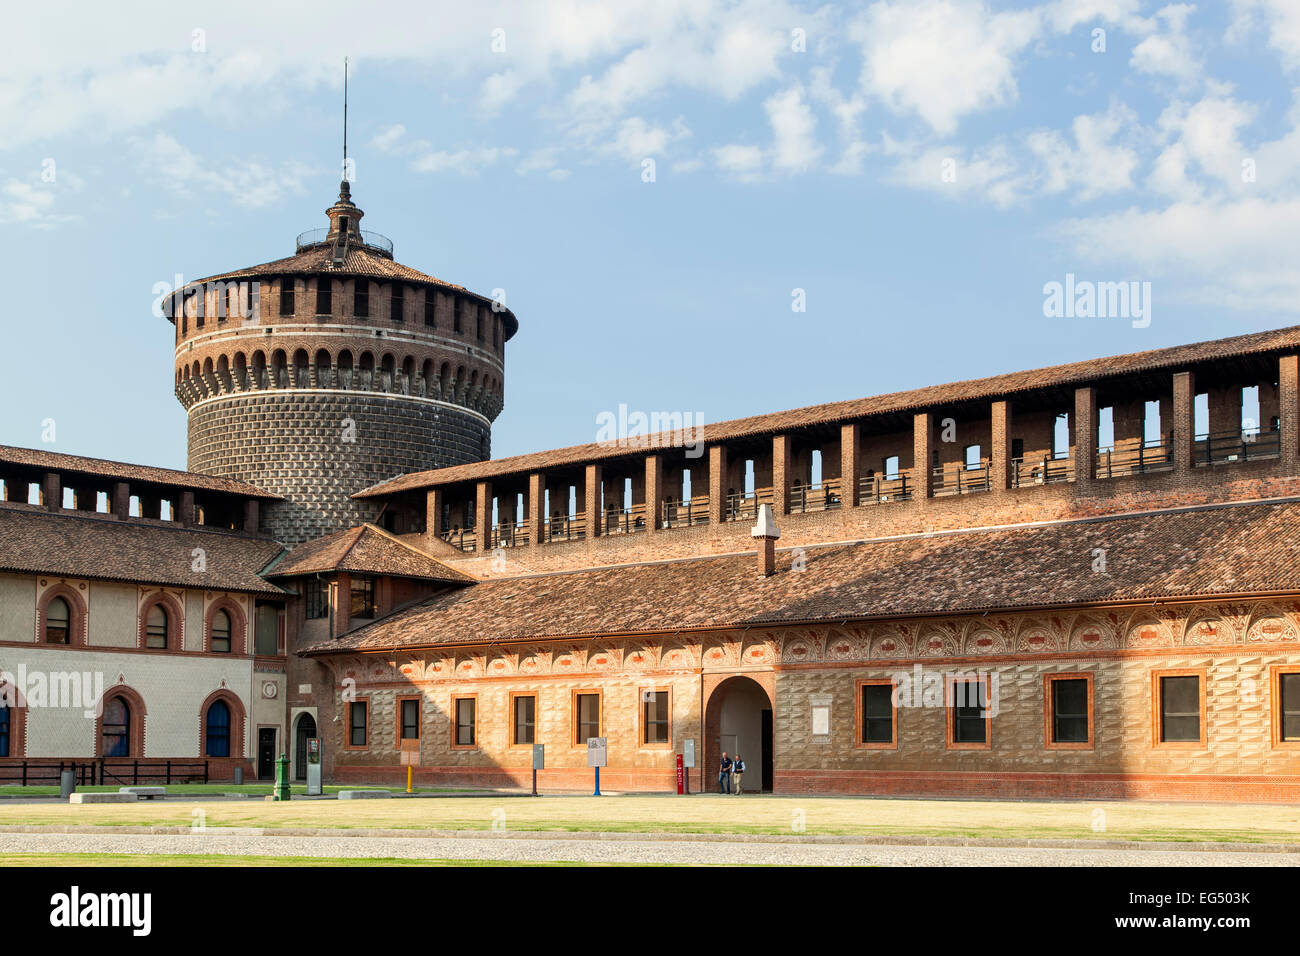 Tower and buildings from inner courtyard, Sforza Castle, Milan, Italy - Stock Image